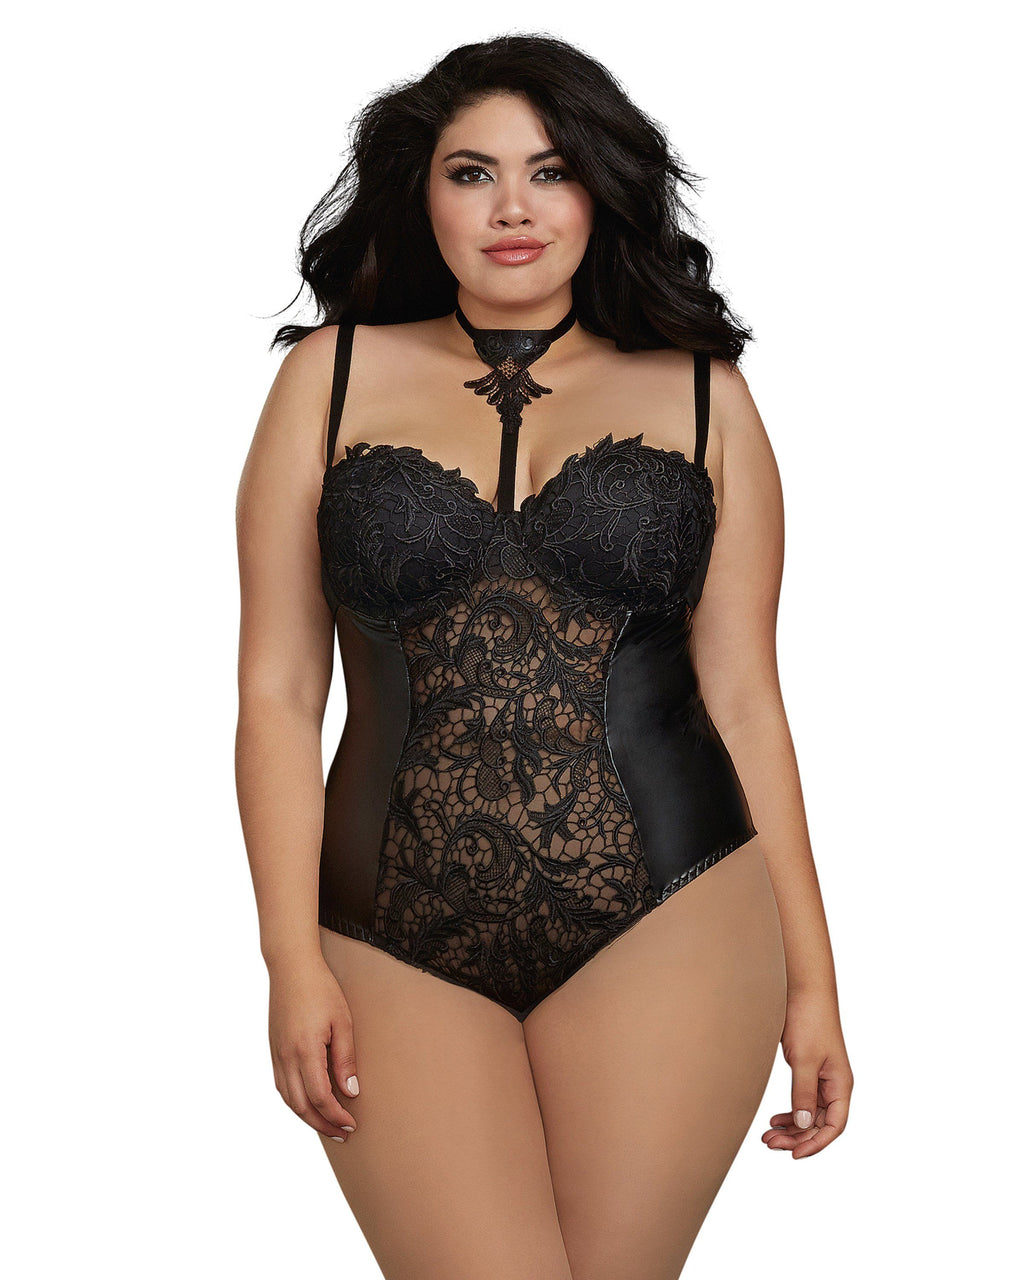 Plus Size Venice Lace and Faux Leather Collared Teddy Teddy Dreamgirl International